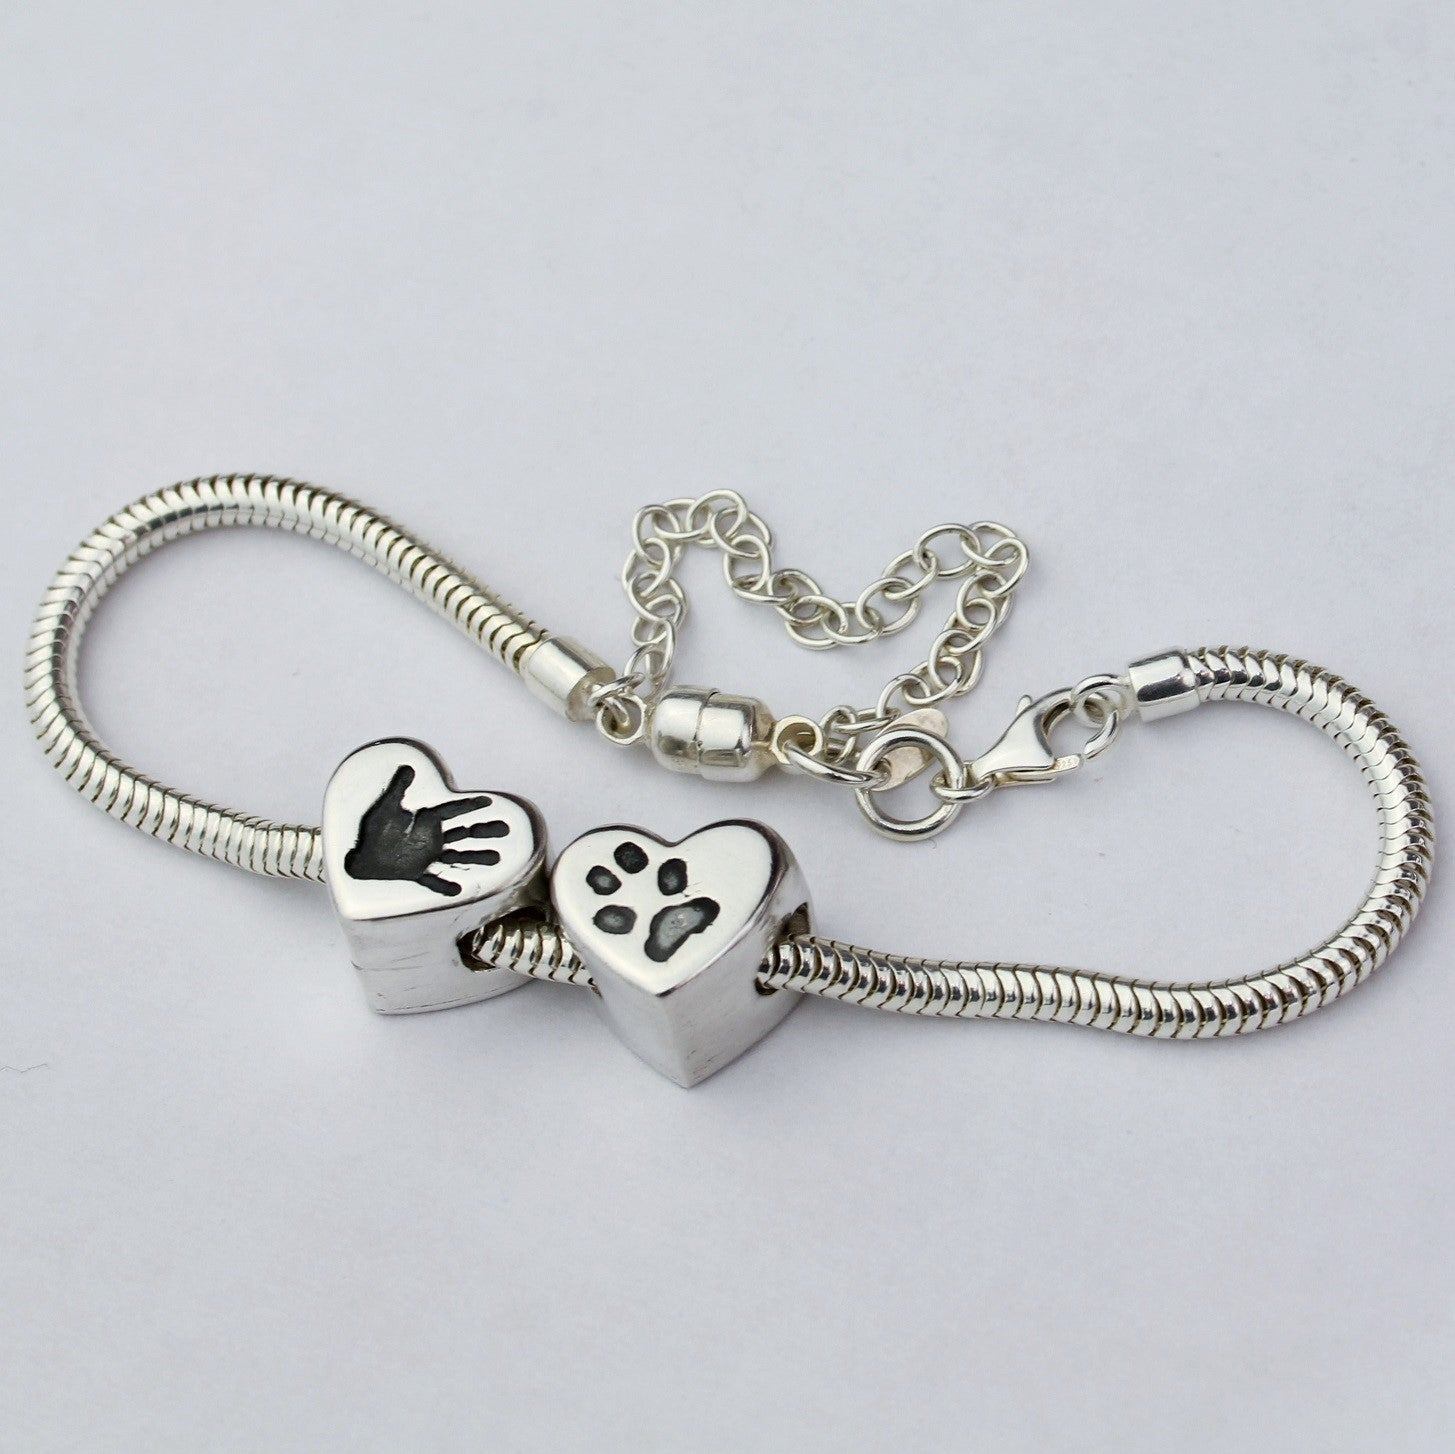 Pandora Style Heart Charm Bead Sterling Silver Handprint Jewellery